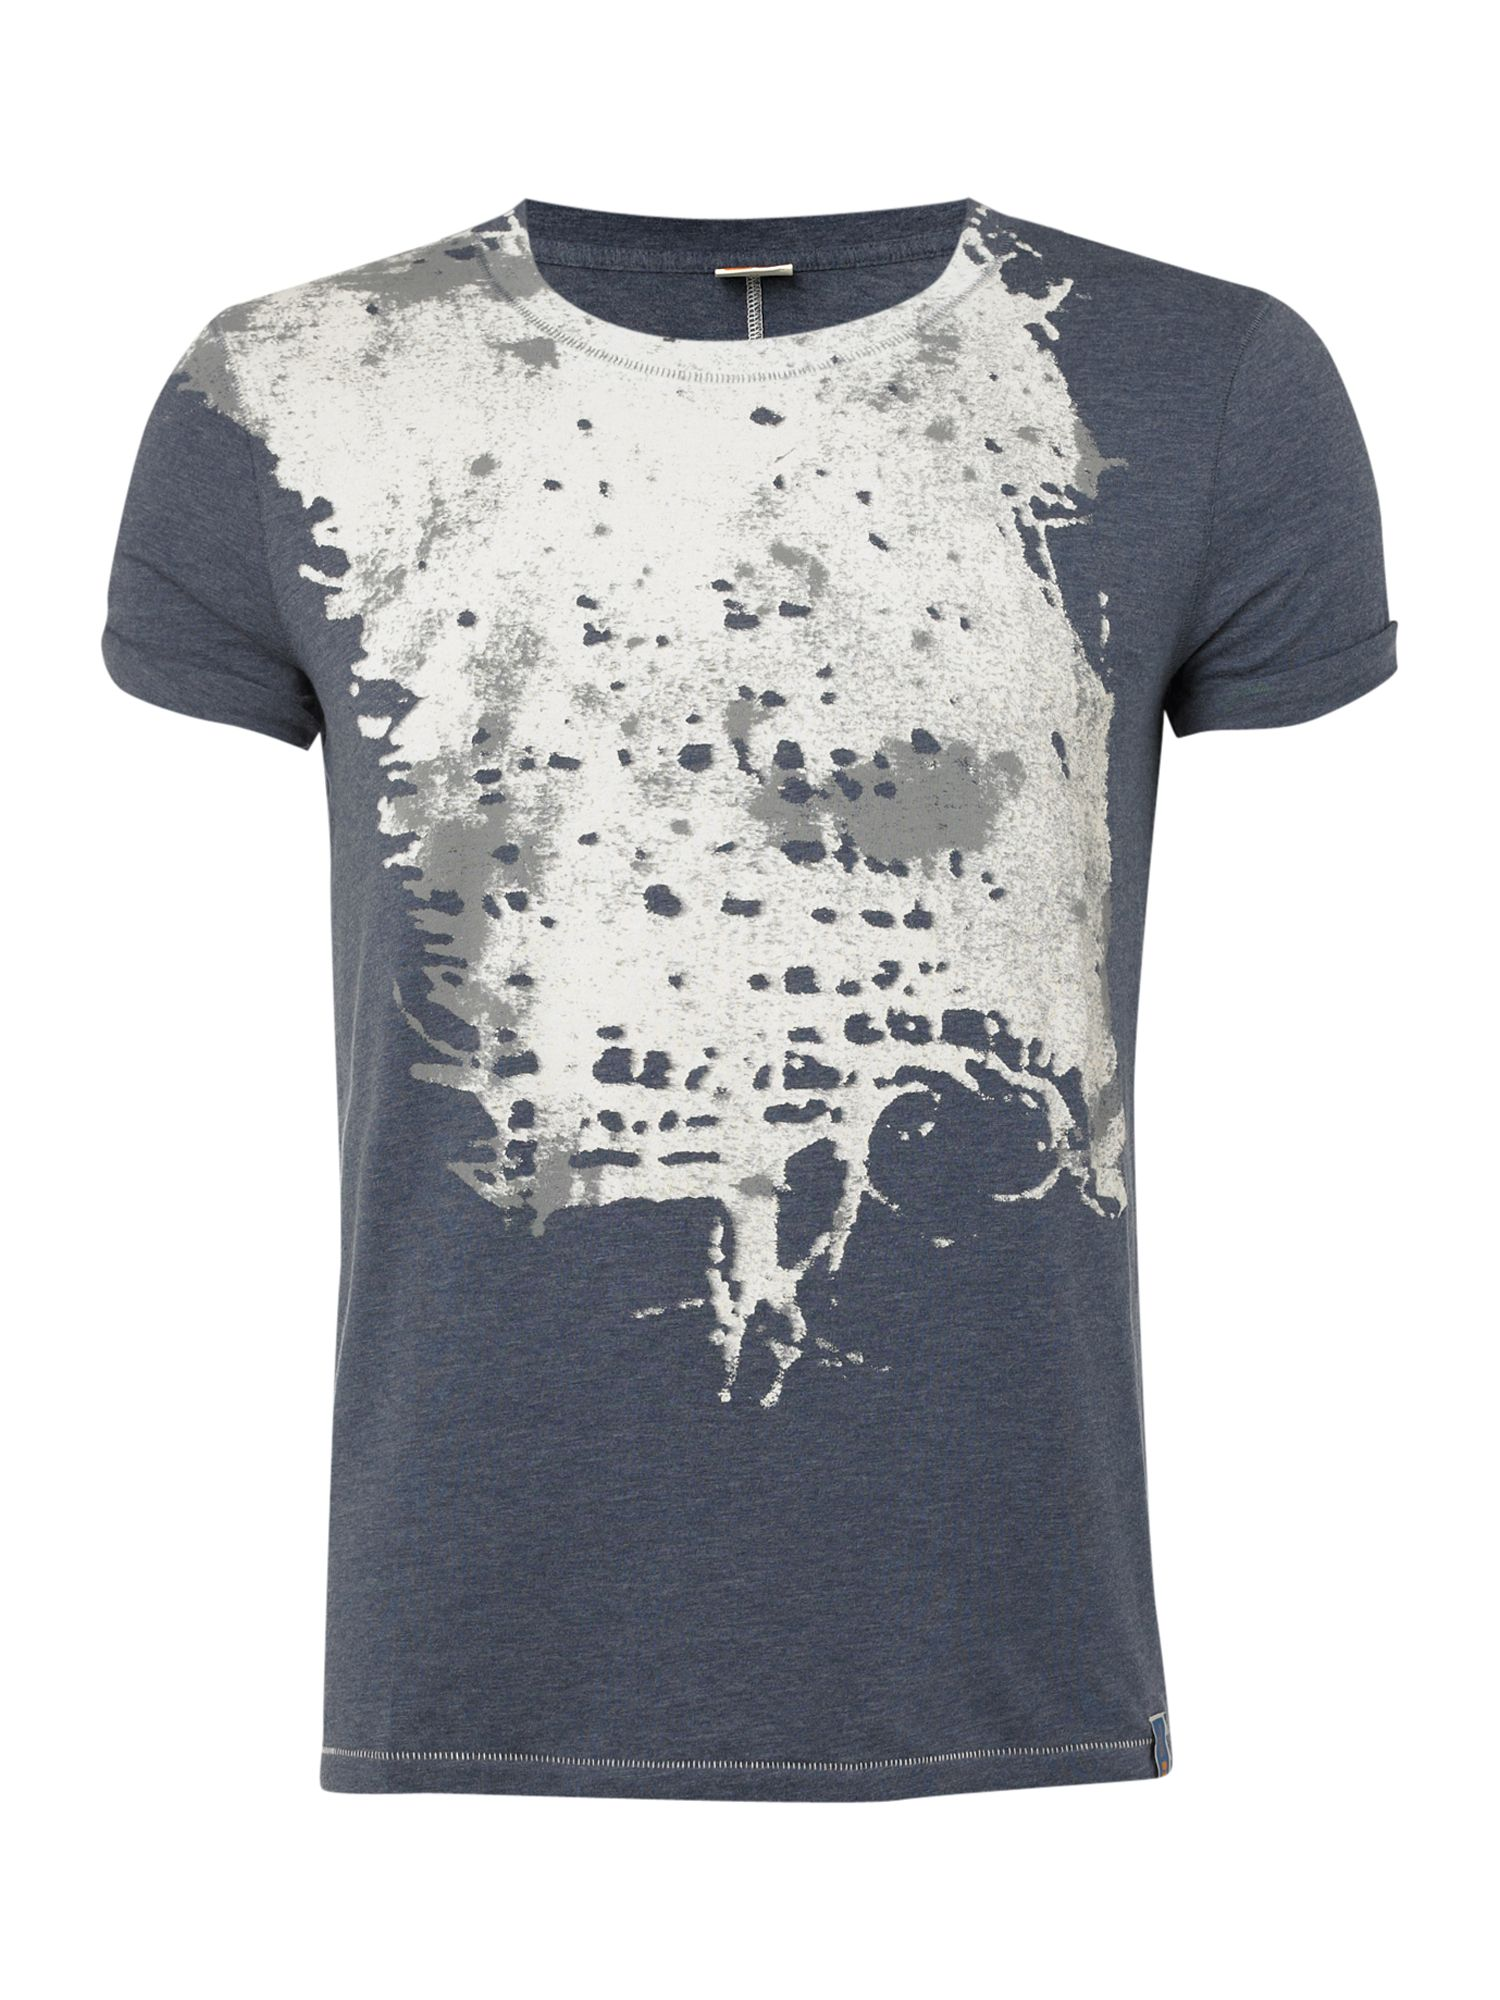 Hugo Boss Splatter T-shirt - Navy product image